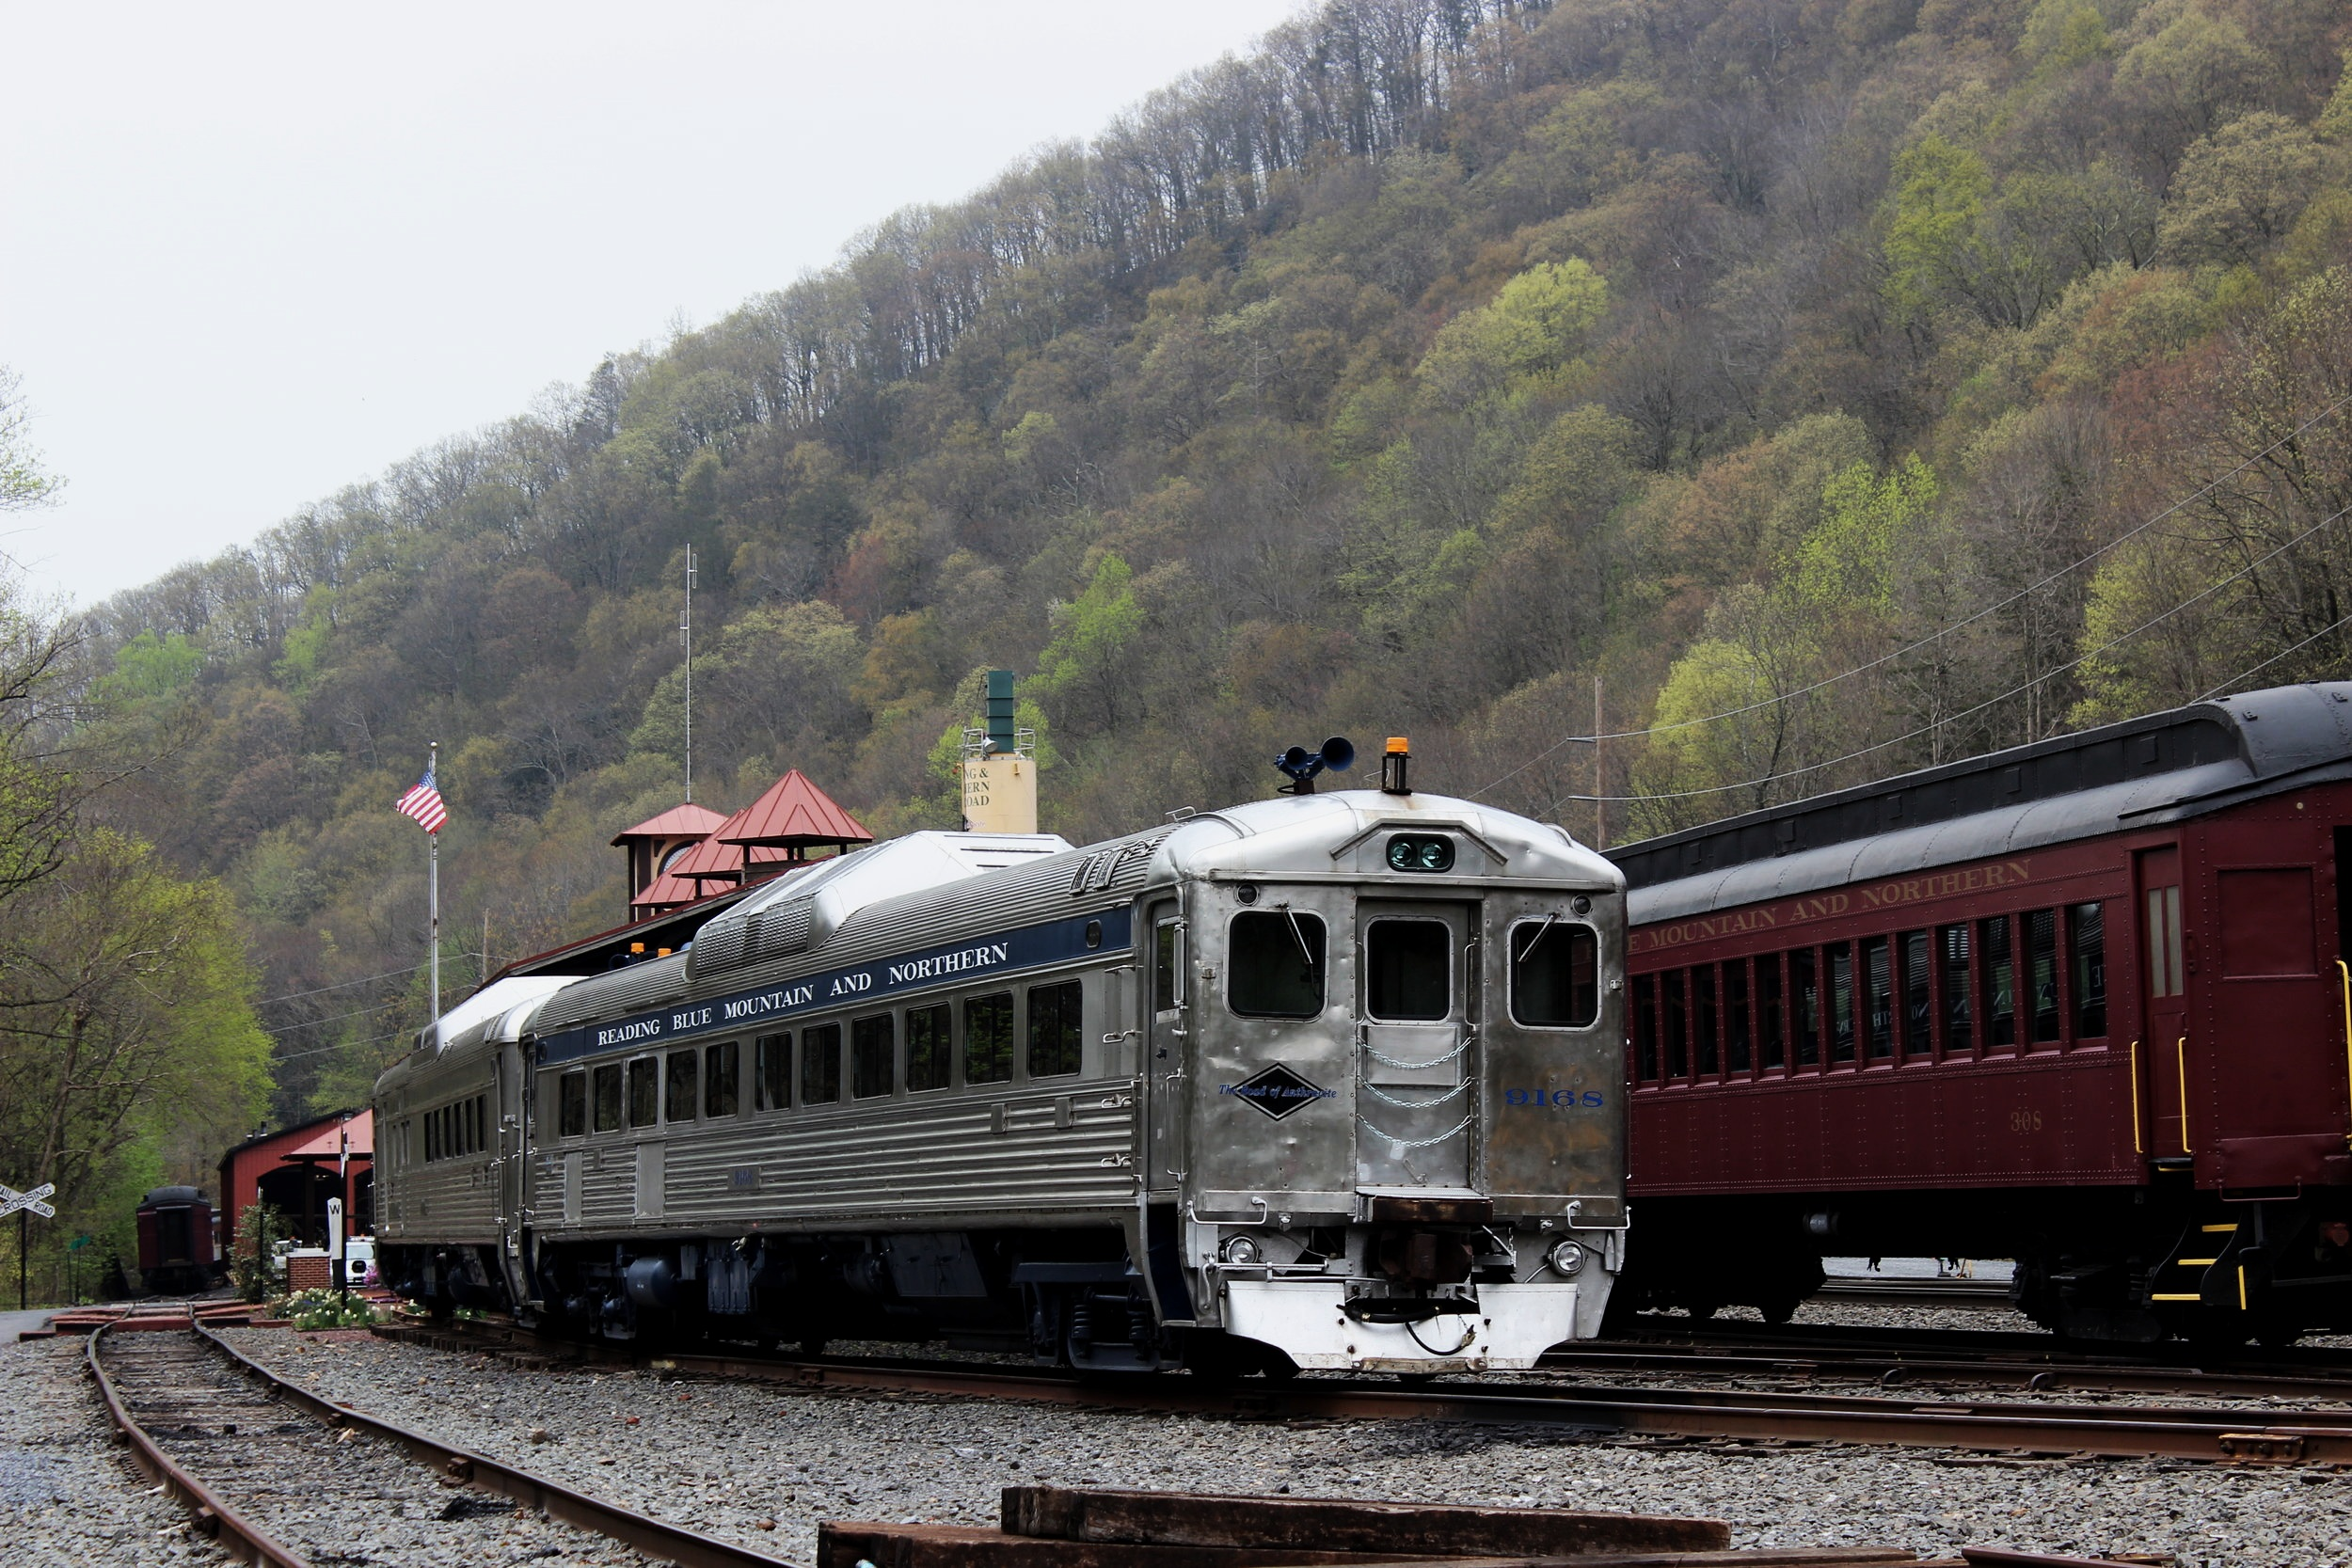 2019 Train Schedule — Reading Blue Mountain & Northern